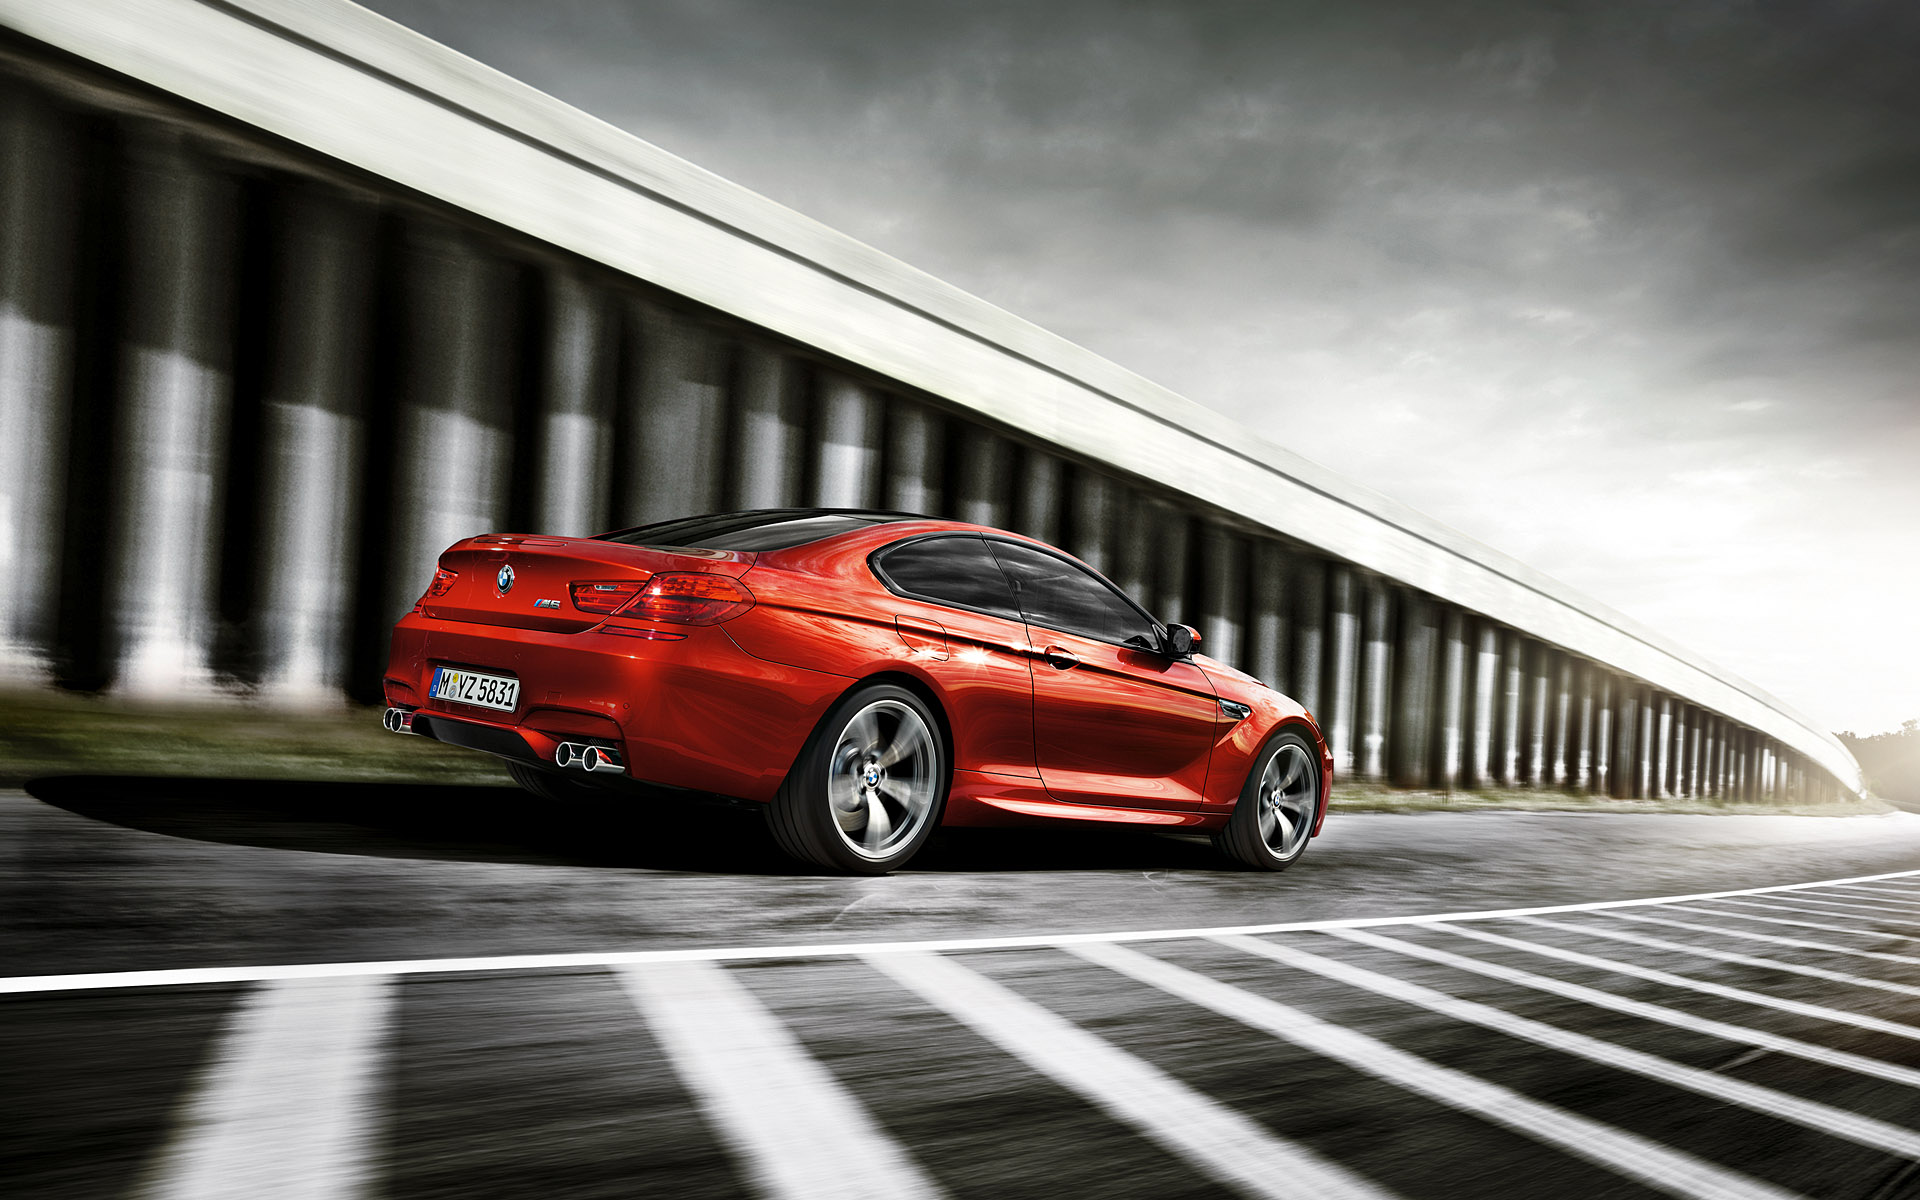 http://www.6post.com/goodiesforyou/m/m6/f12-f13/pressrelease/wallpapers/04_1920x1200_m6_coupe_wallpaper.jpg